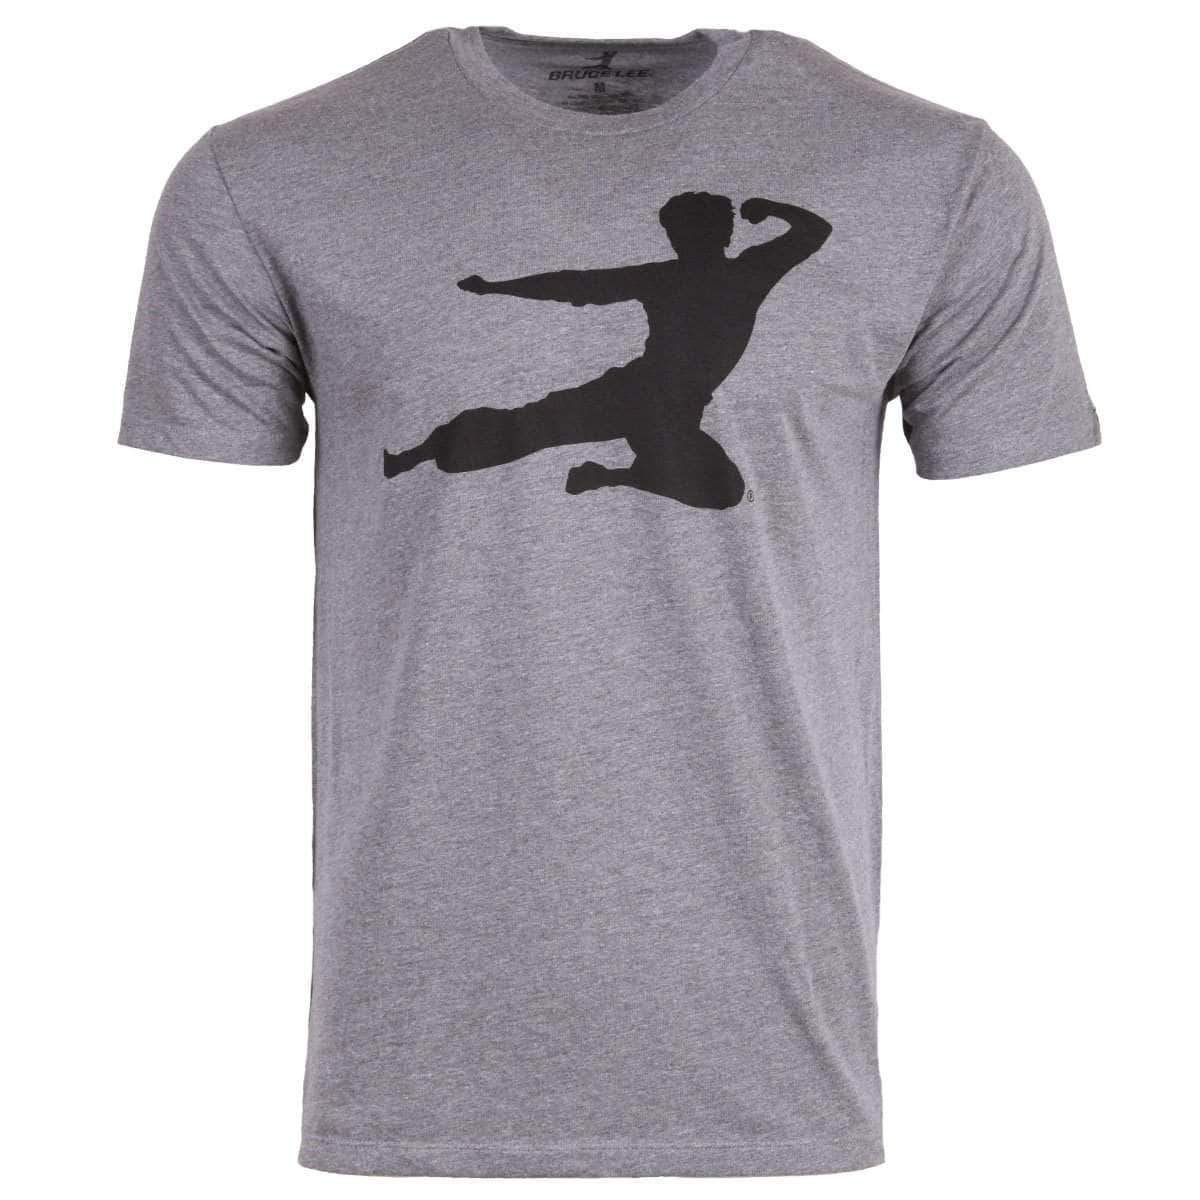 Flying Man T-shirt - Heather Grey